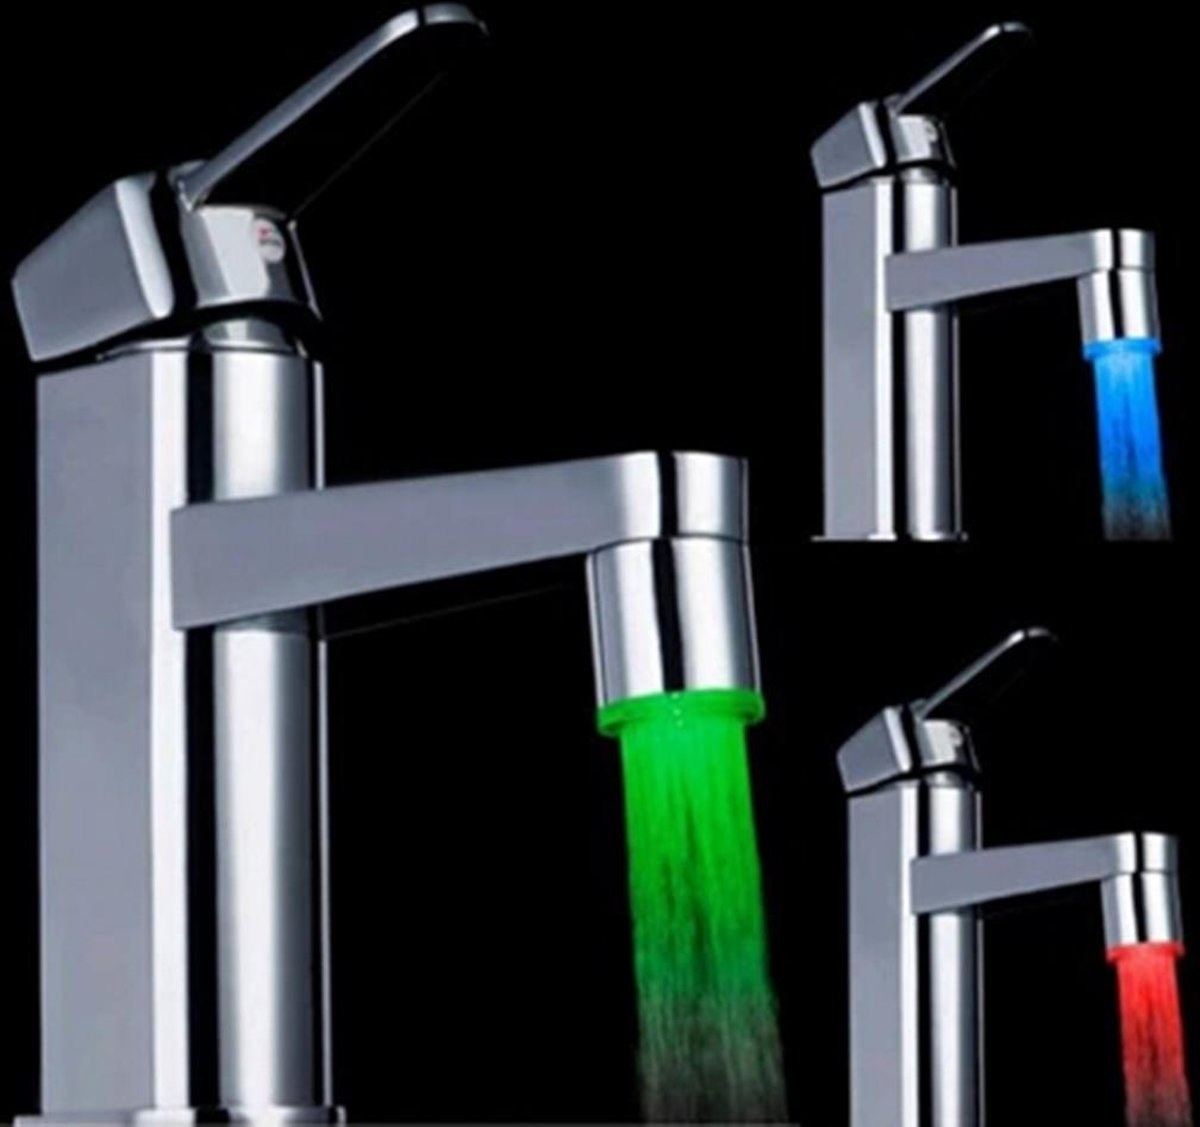 Colour-changing LED light on a tap